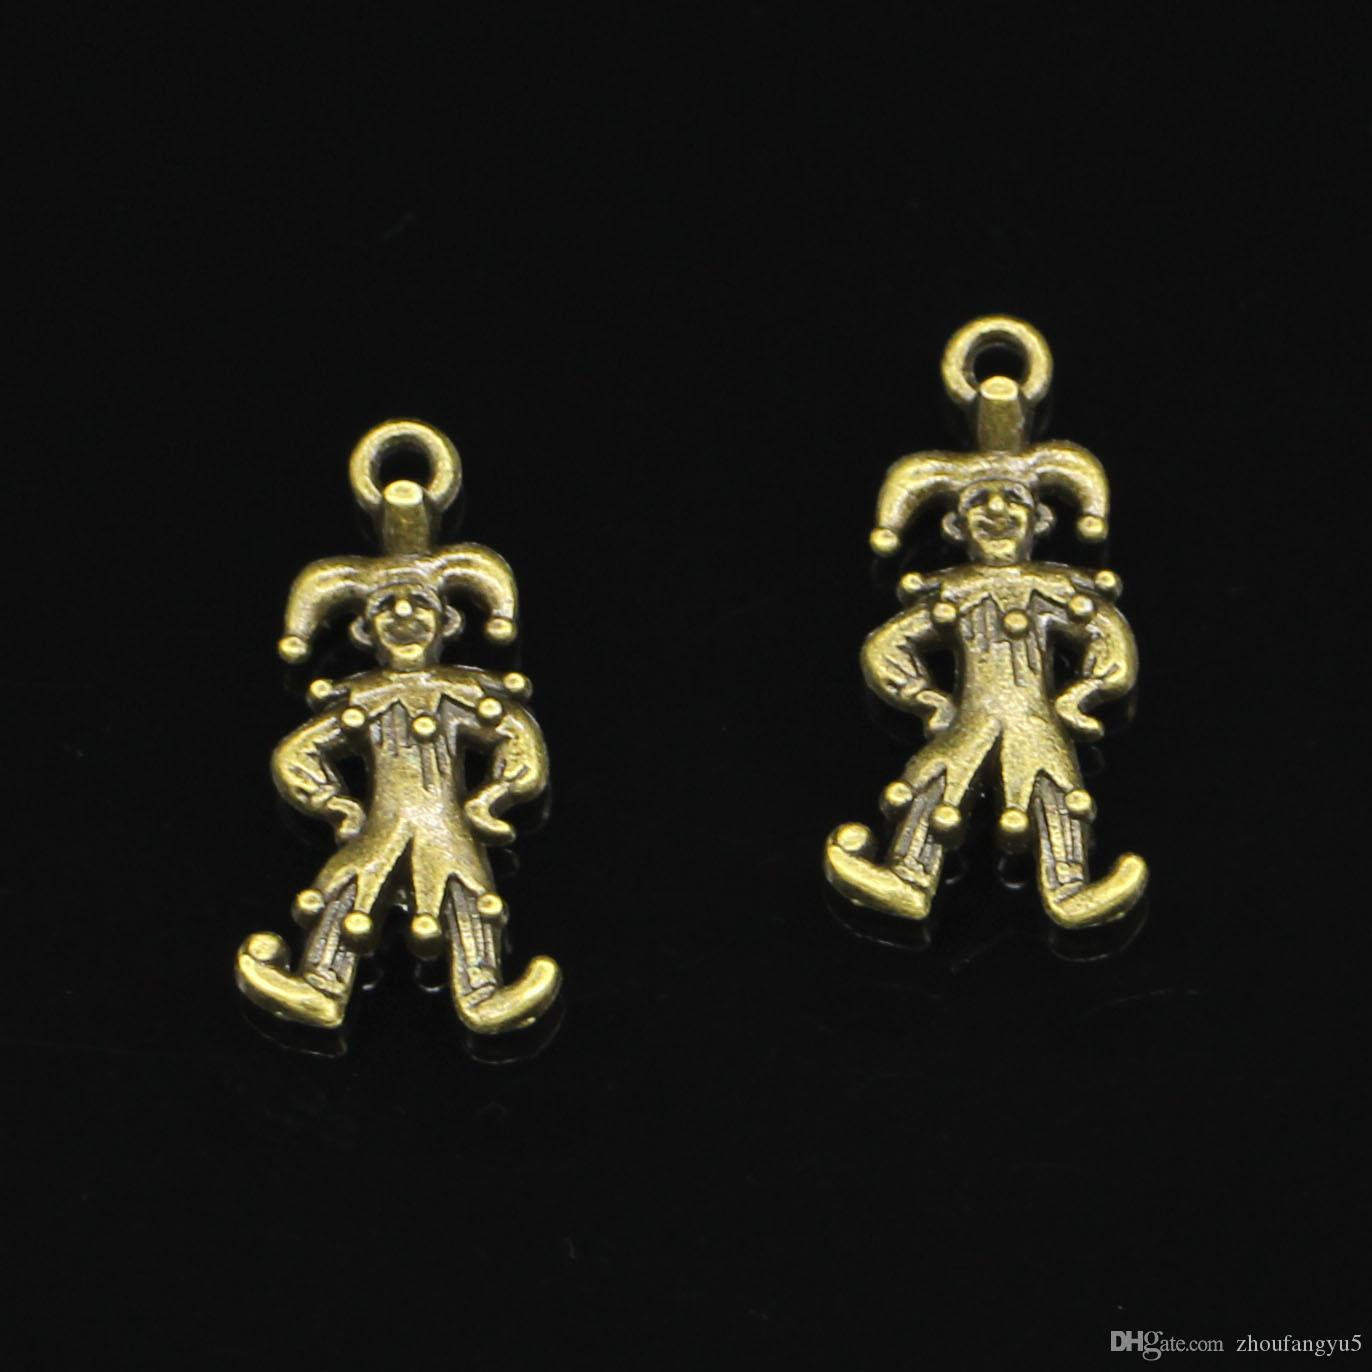 63pcs Zinc Alloy Charms Antique Bronze Plated clown joker jester Charms for Jewelry Making DIY Handmade Pendants 25*12mm